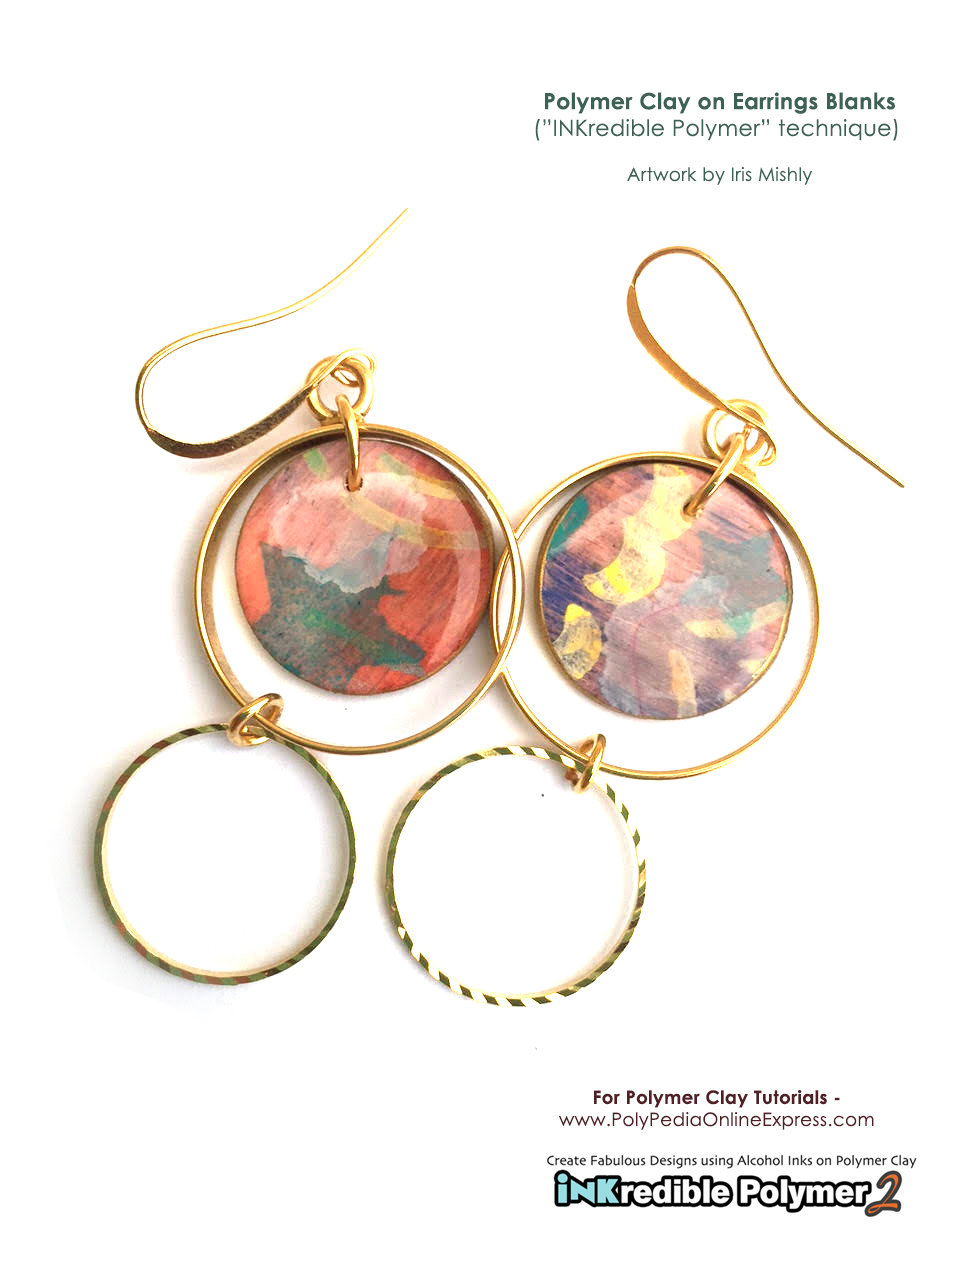 polymer-clay-earring-tutorial-alcohol-ink-iris-mishly6